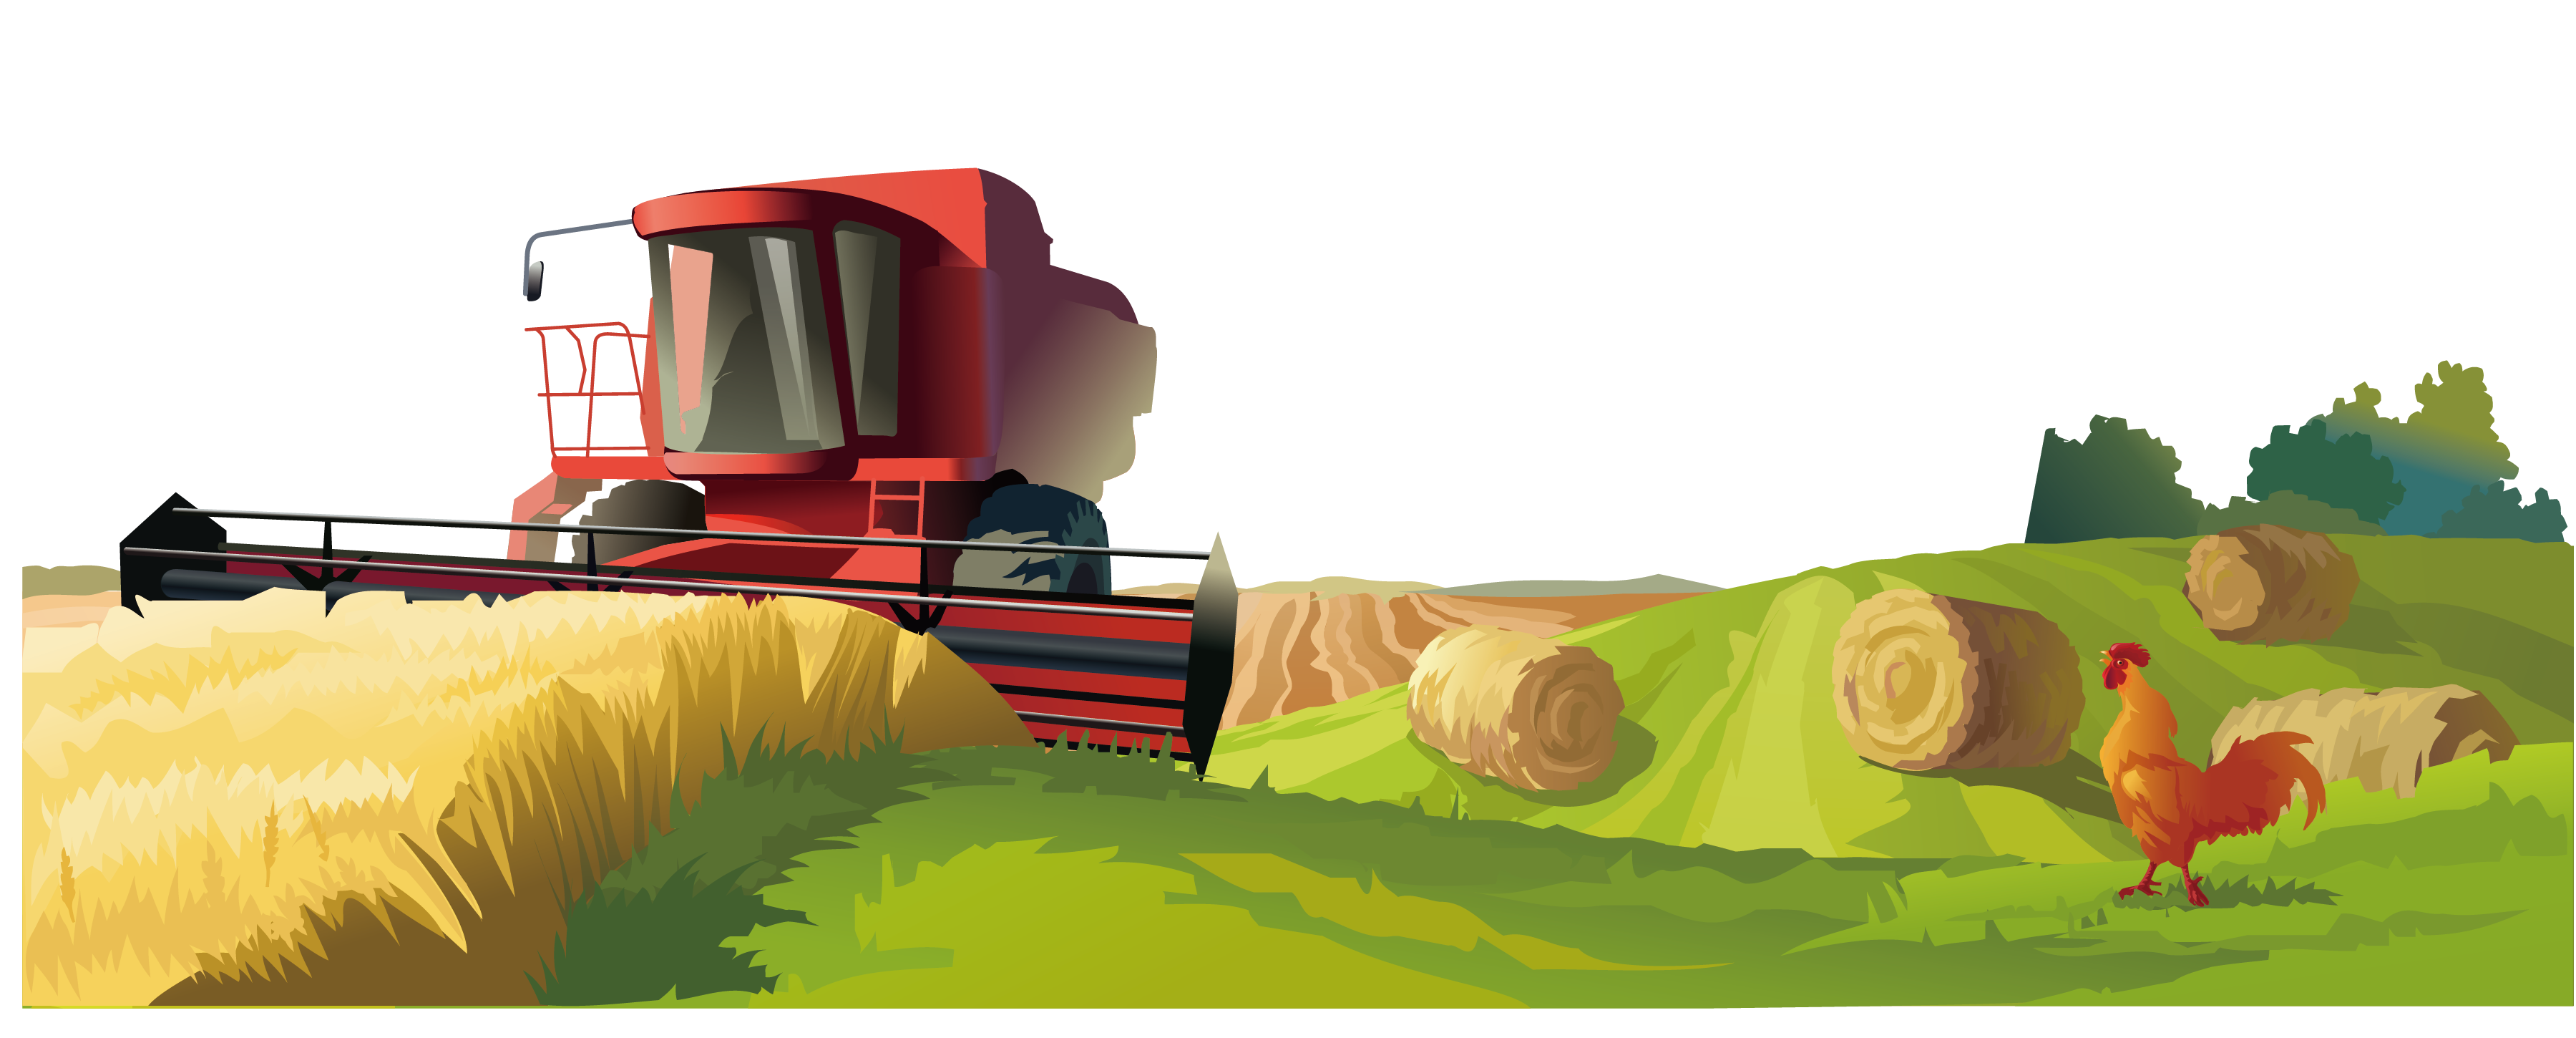 Download Free png Agriculture Photography Illustration.